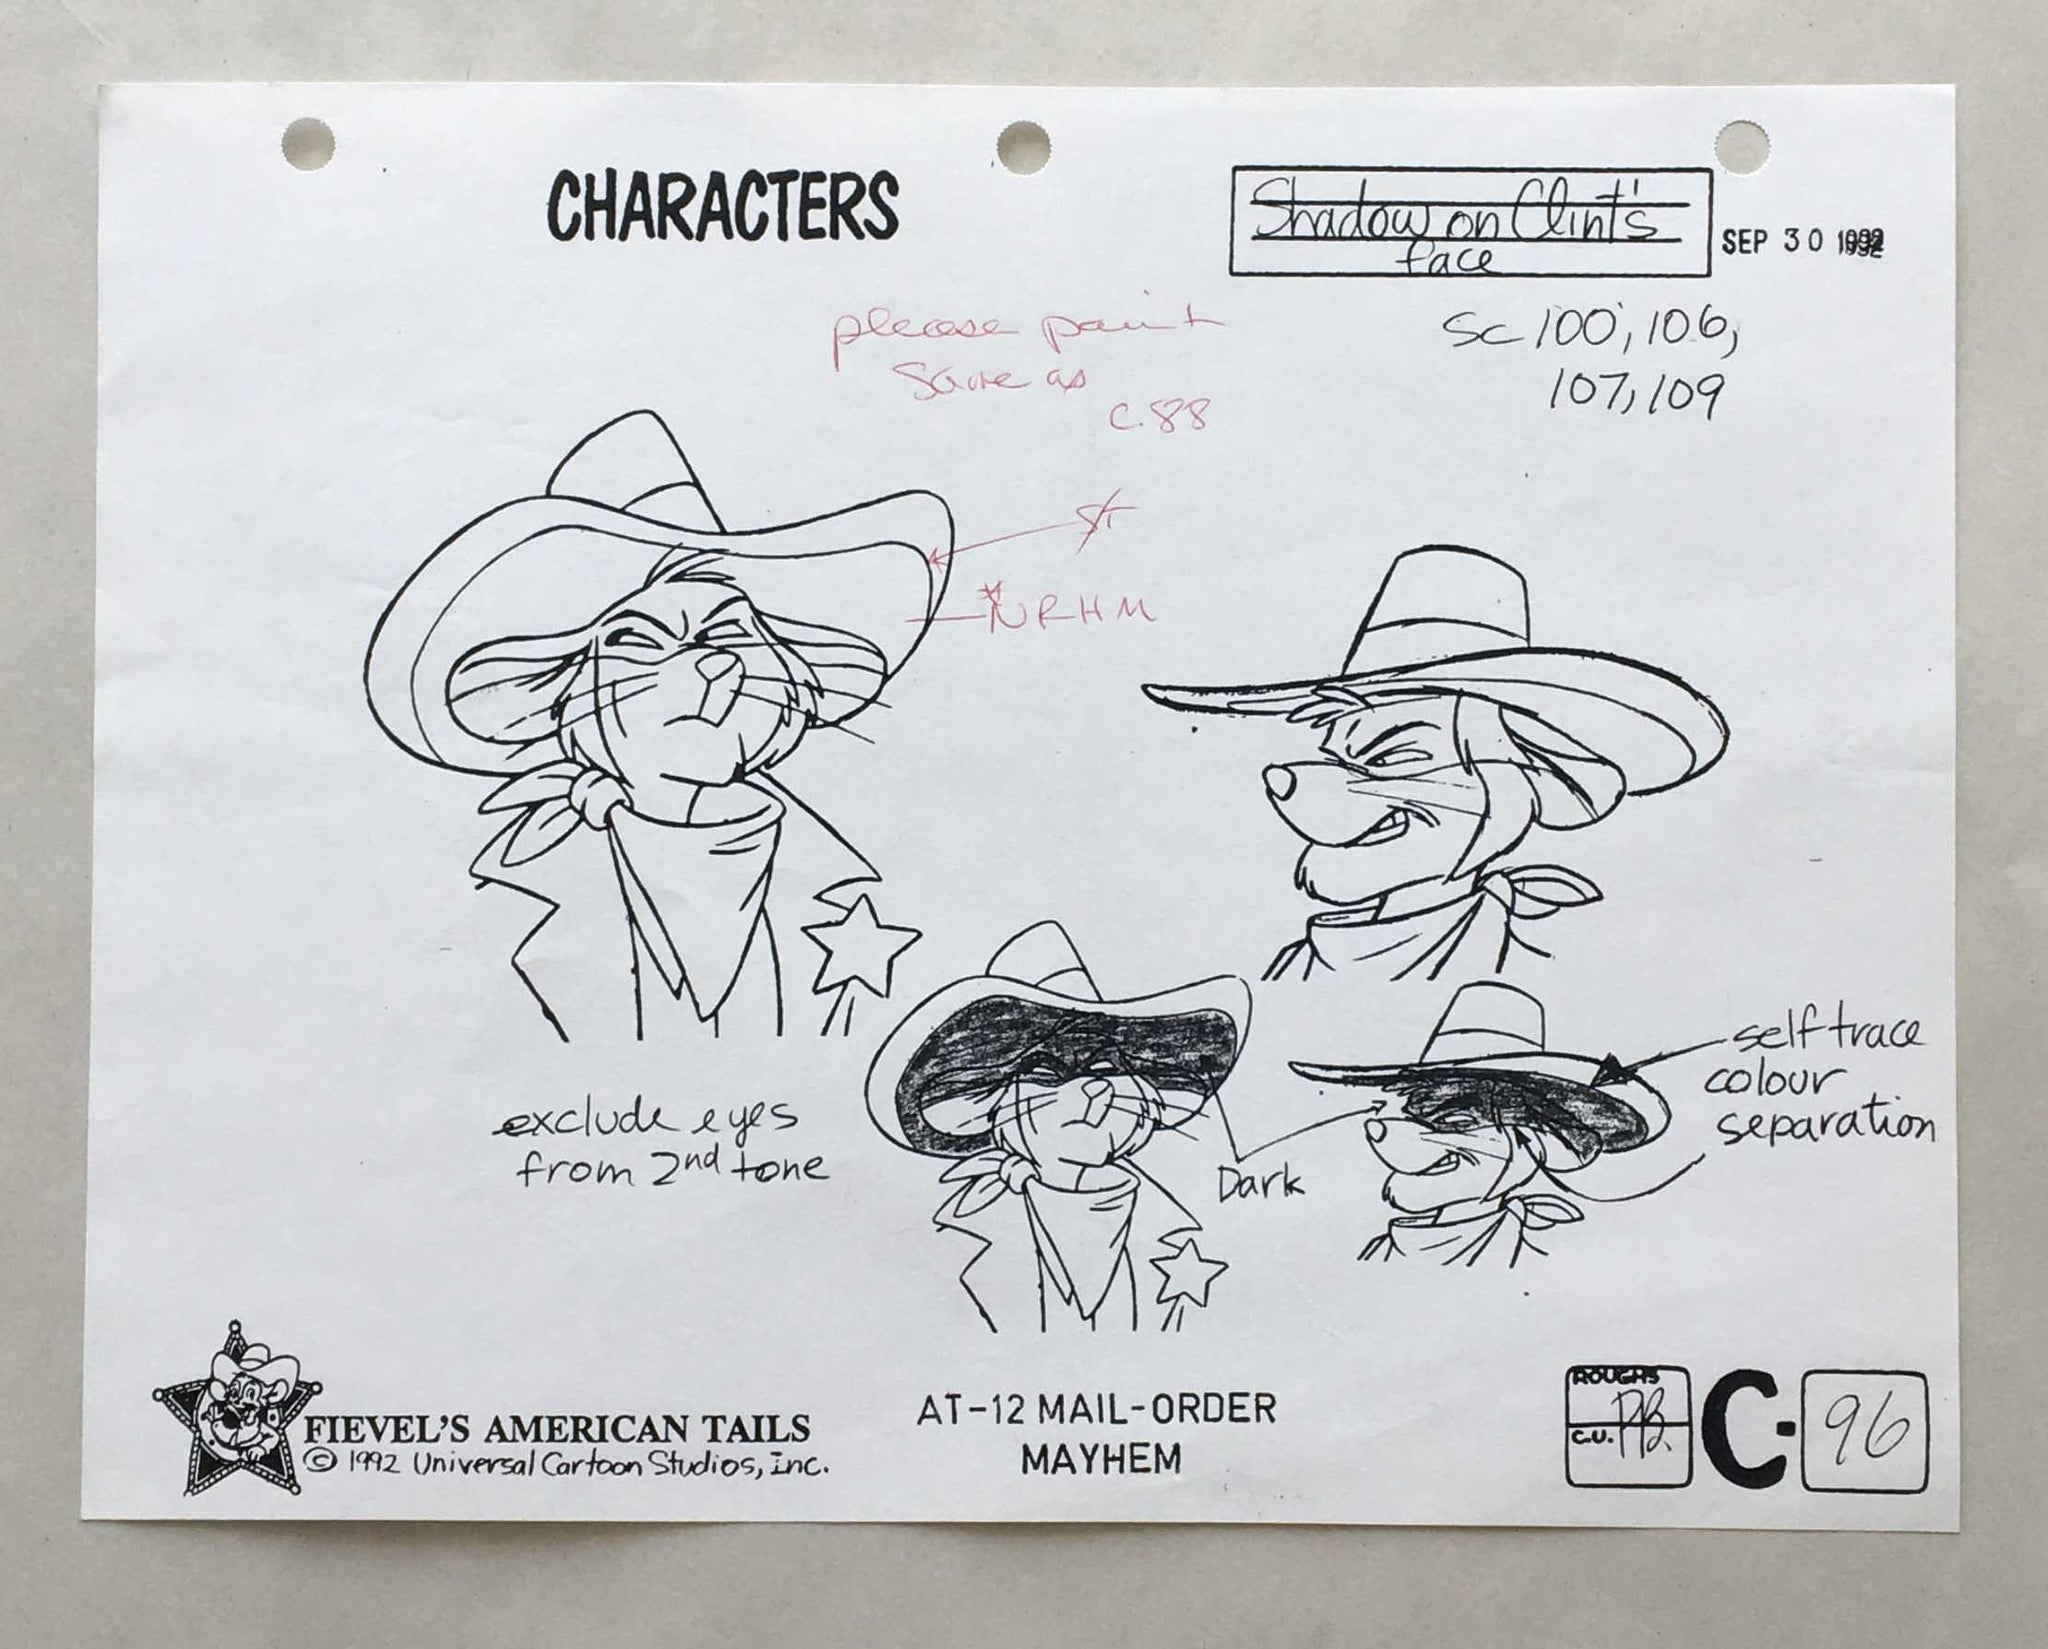 Fievel's American Tails 1 (EX0377) - Animation Legends